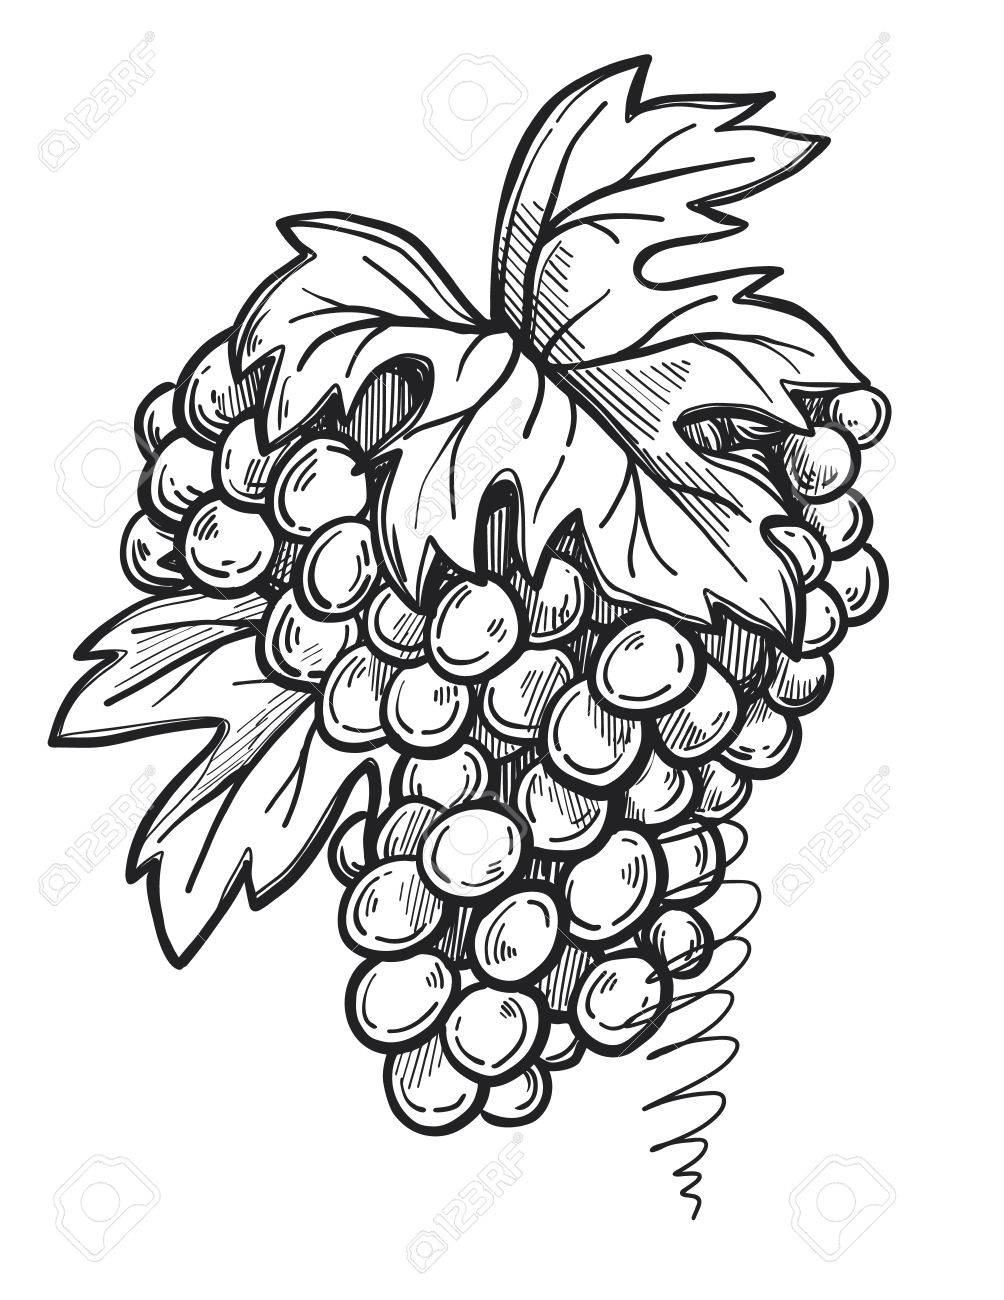 Bunch Of Grapes Drawing at GetDrawings.com | Free for personal use ...